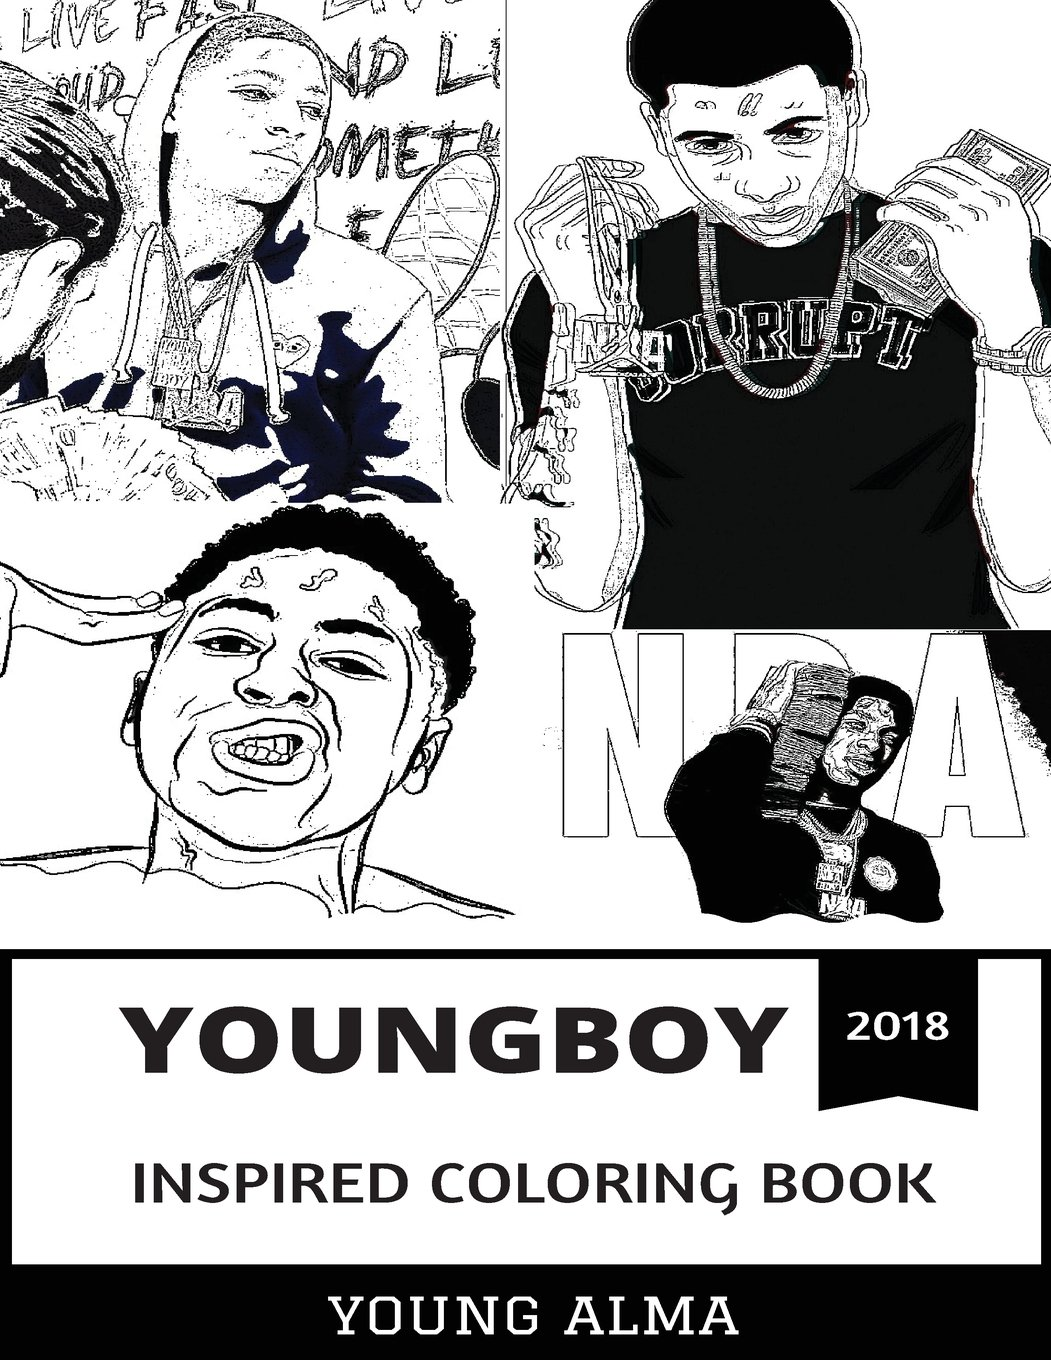 Youngboy Inspired Coloring Book  Rap Prodigy And Mainstream